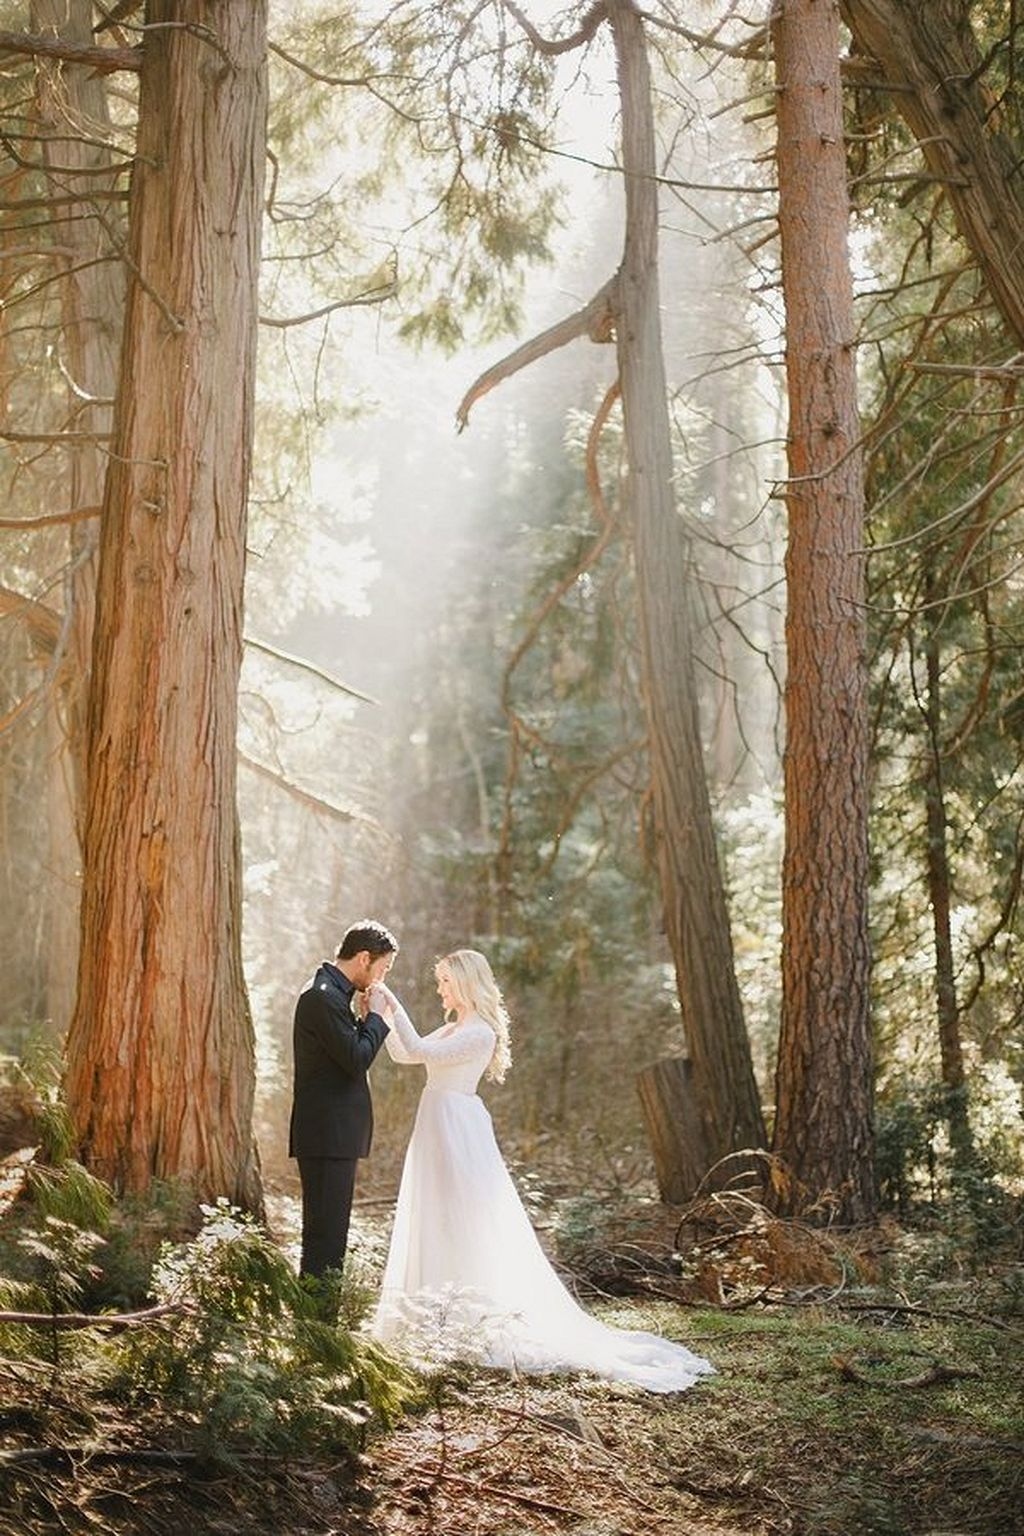 100+ Forest Wedding Ideas